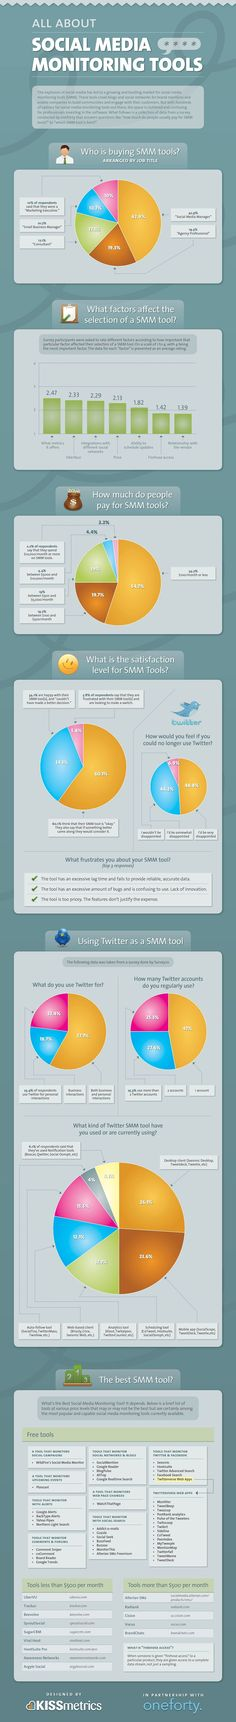 All about Social Media monitoring tools #socialmedia #infographic